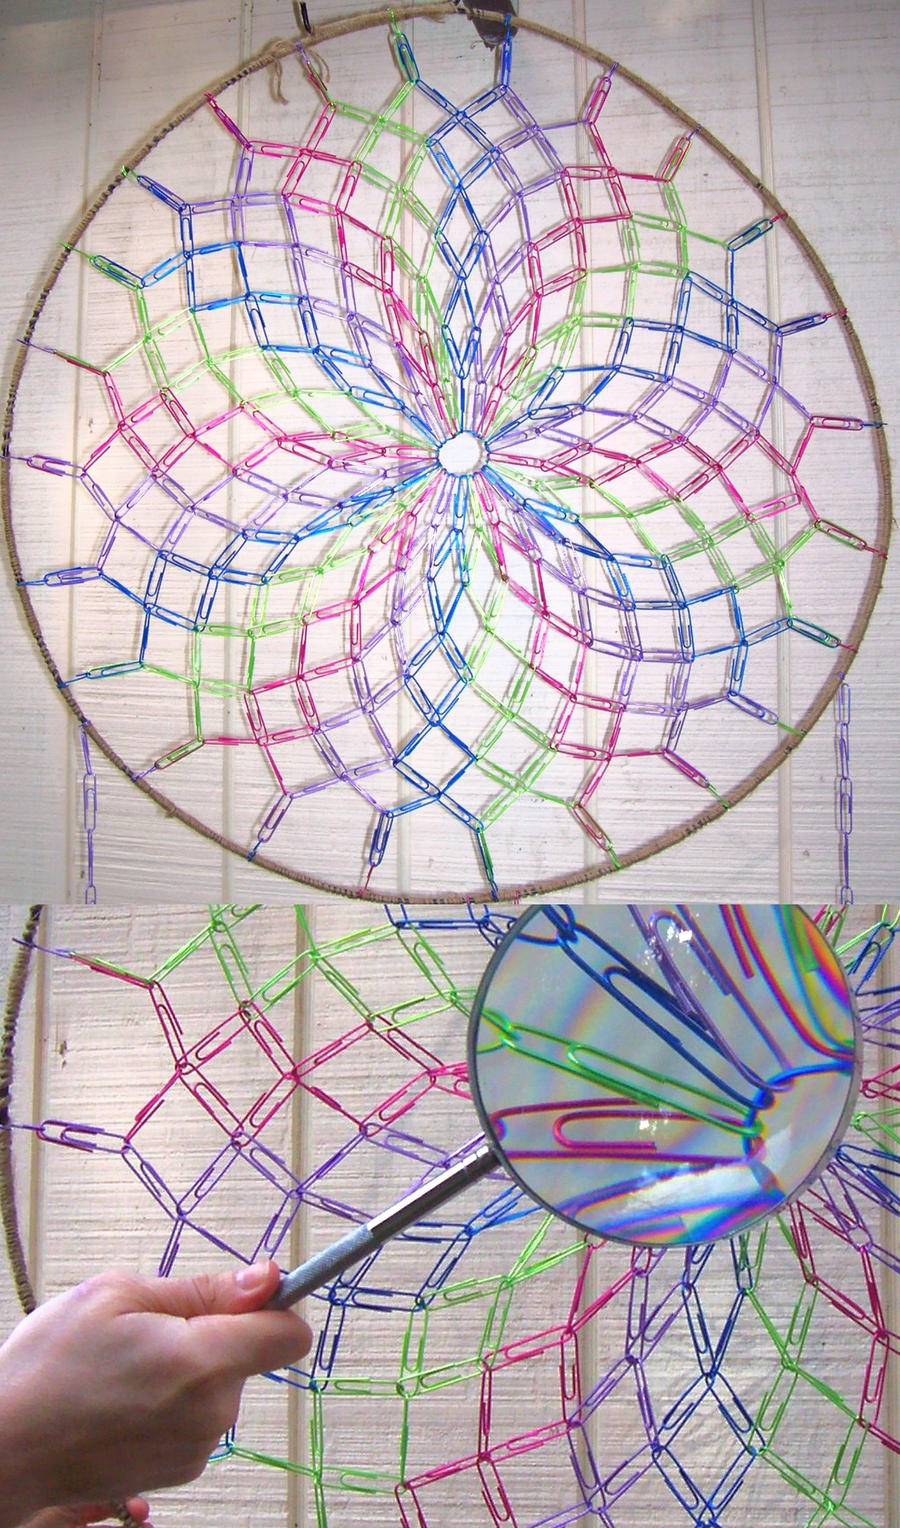 Paperclip dreamcatcher by jpcopper on deviantart for Things you can make with paper clips